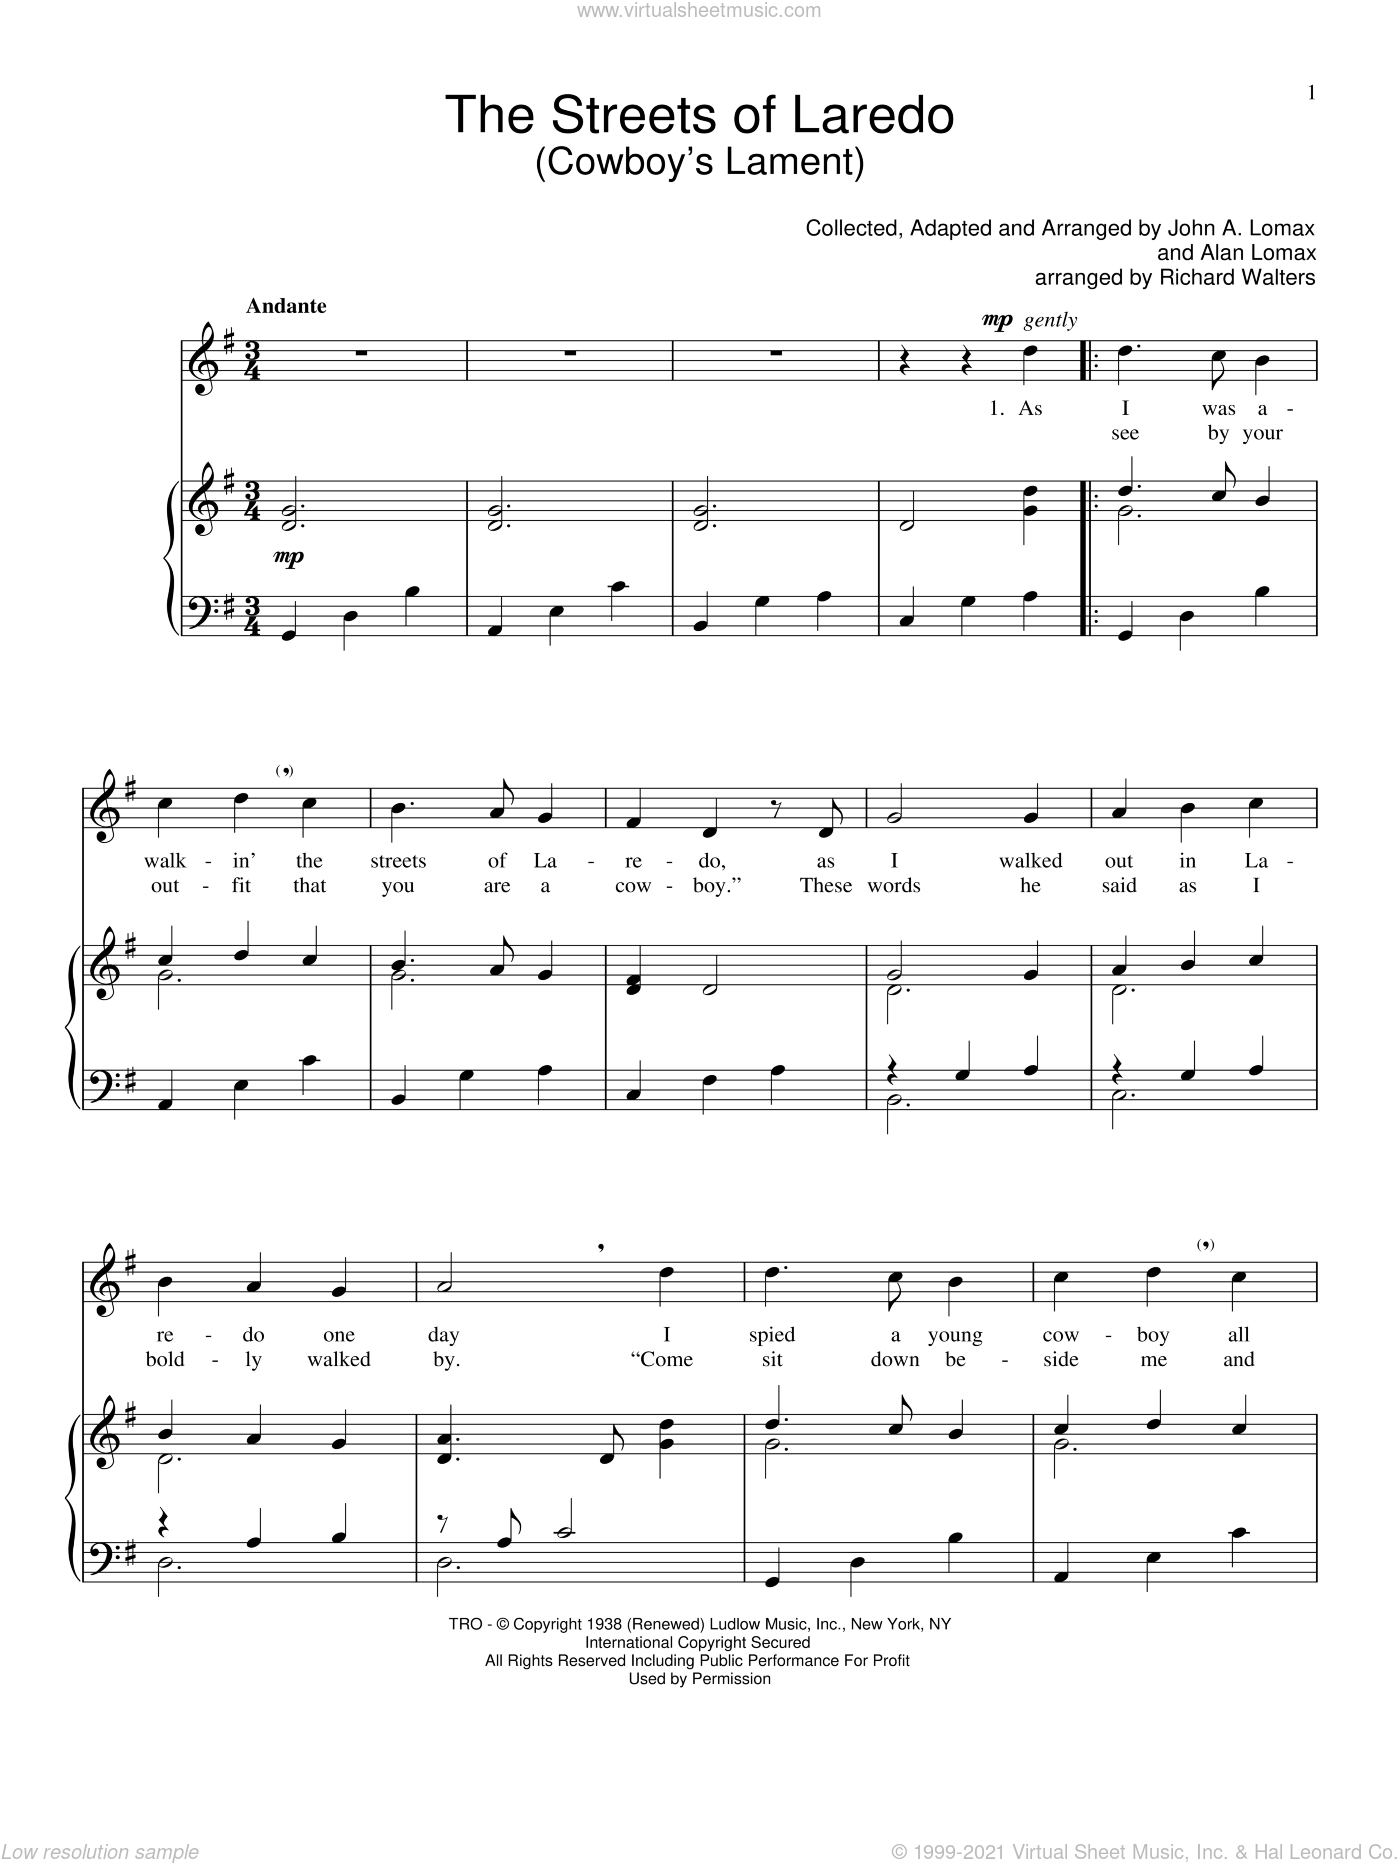 The Streets Of Laredo sheet music for voice and piano by John A. Lomax. Score Image Preview.